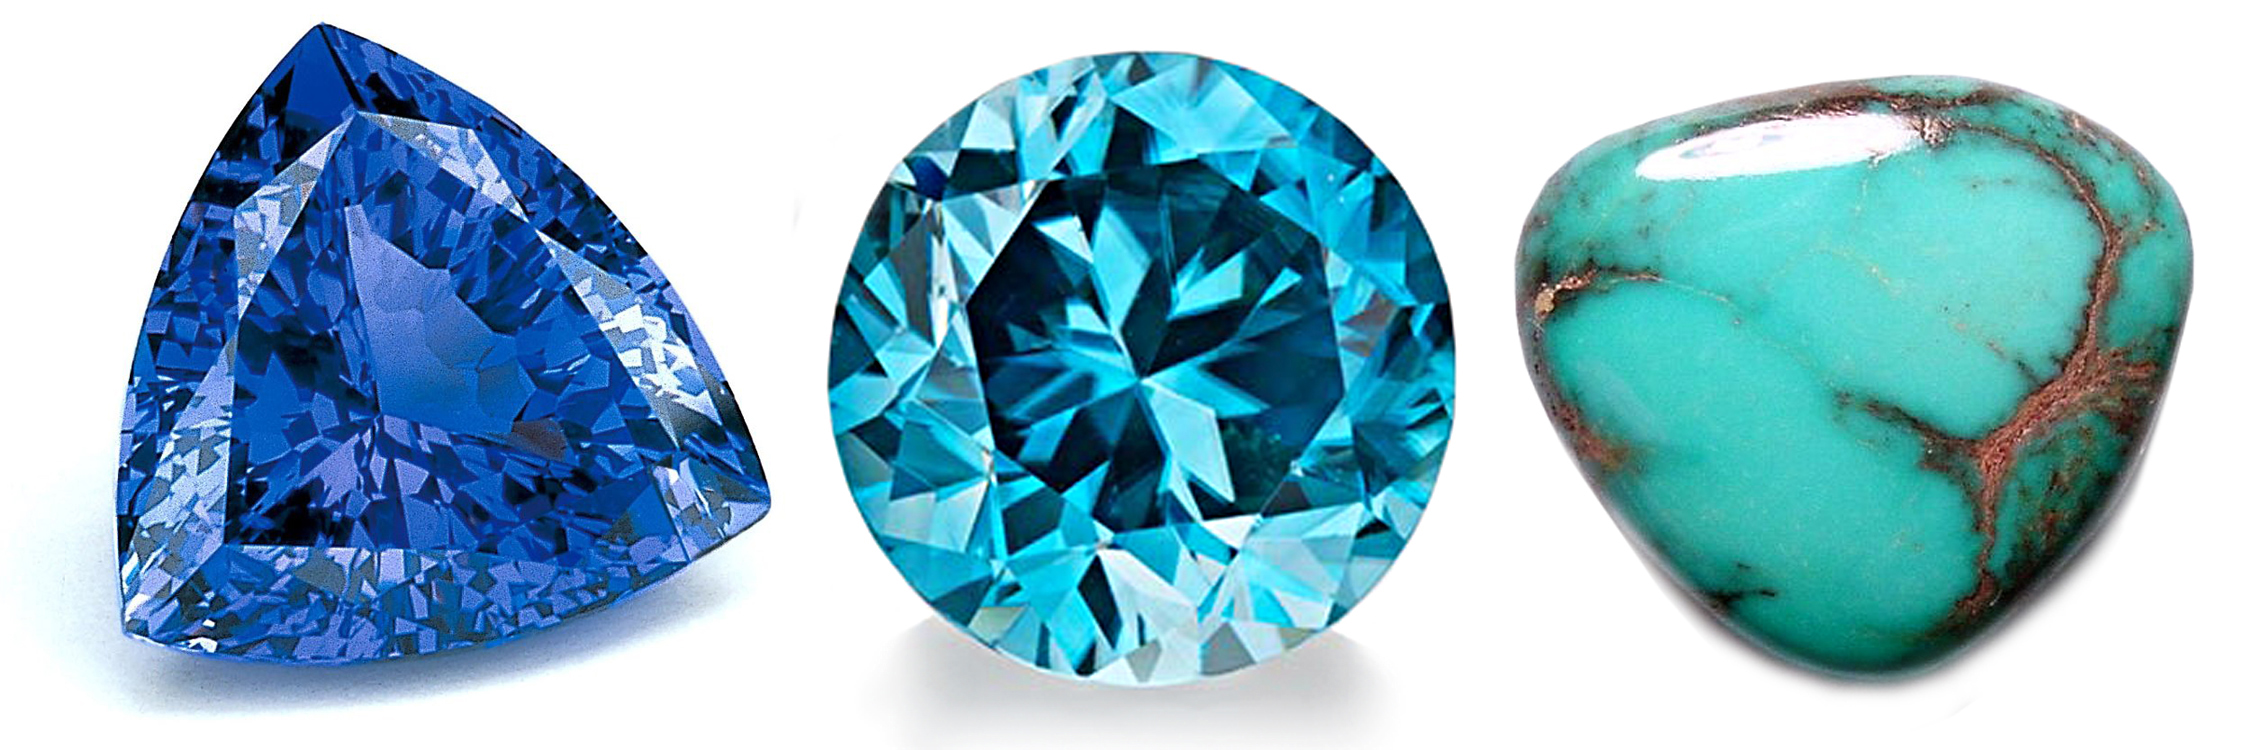 newcomer of image world gemstoneguru real turned that young blue gemstone tanzanite the one